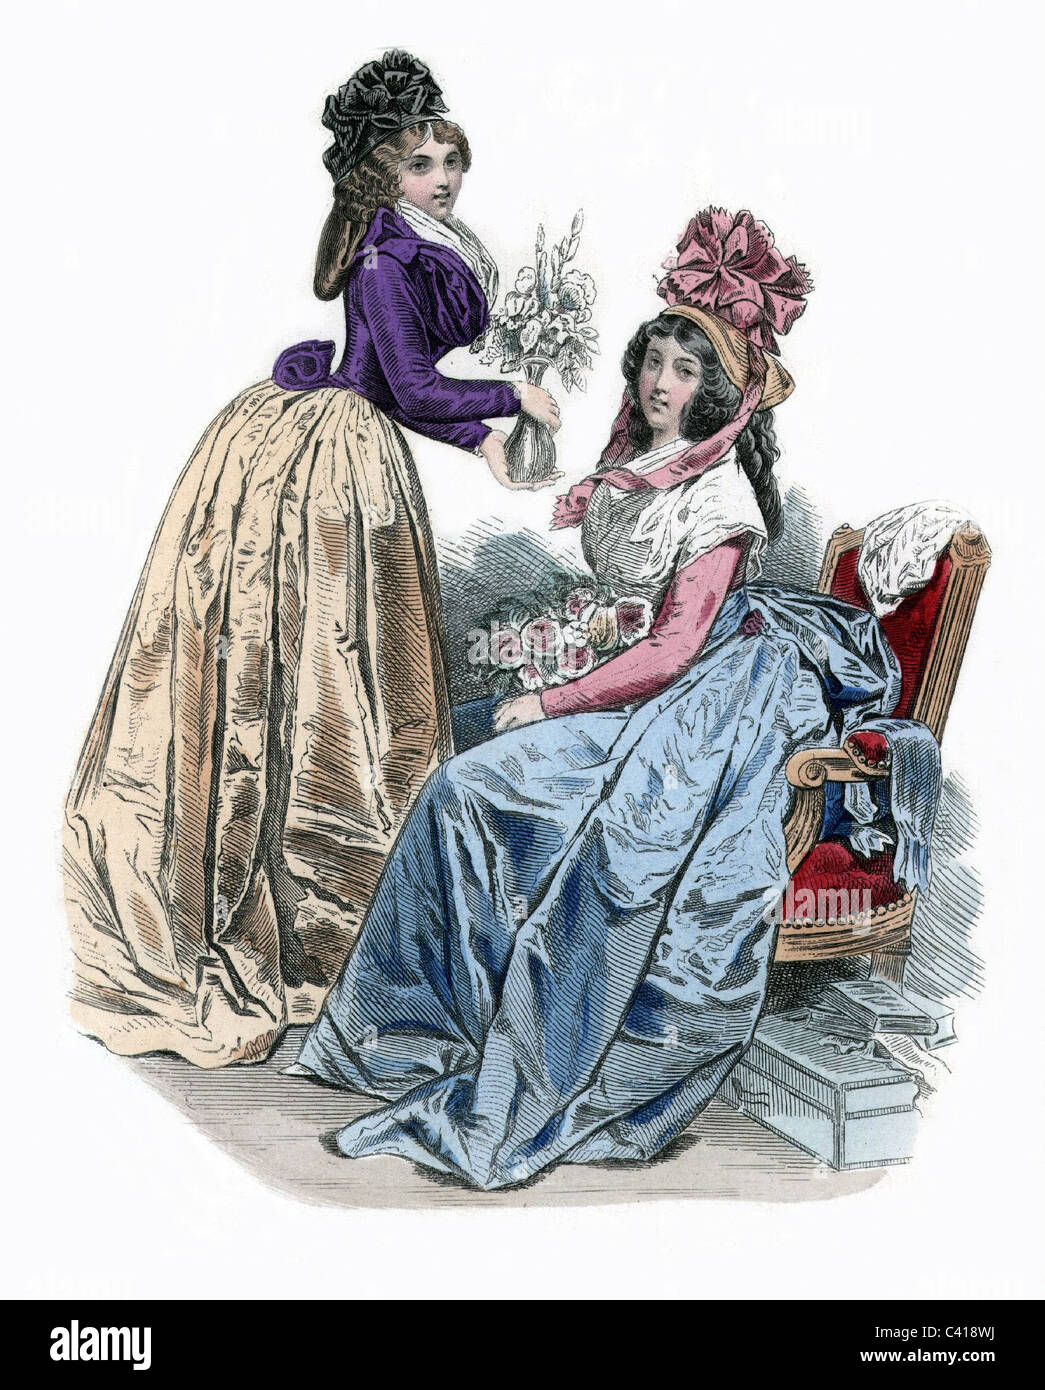 th century lady stock photos th century lady stock images fashion ladie s fashion 18th century paris 1790 coloured engraving